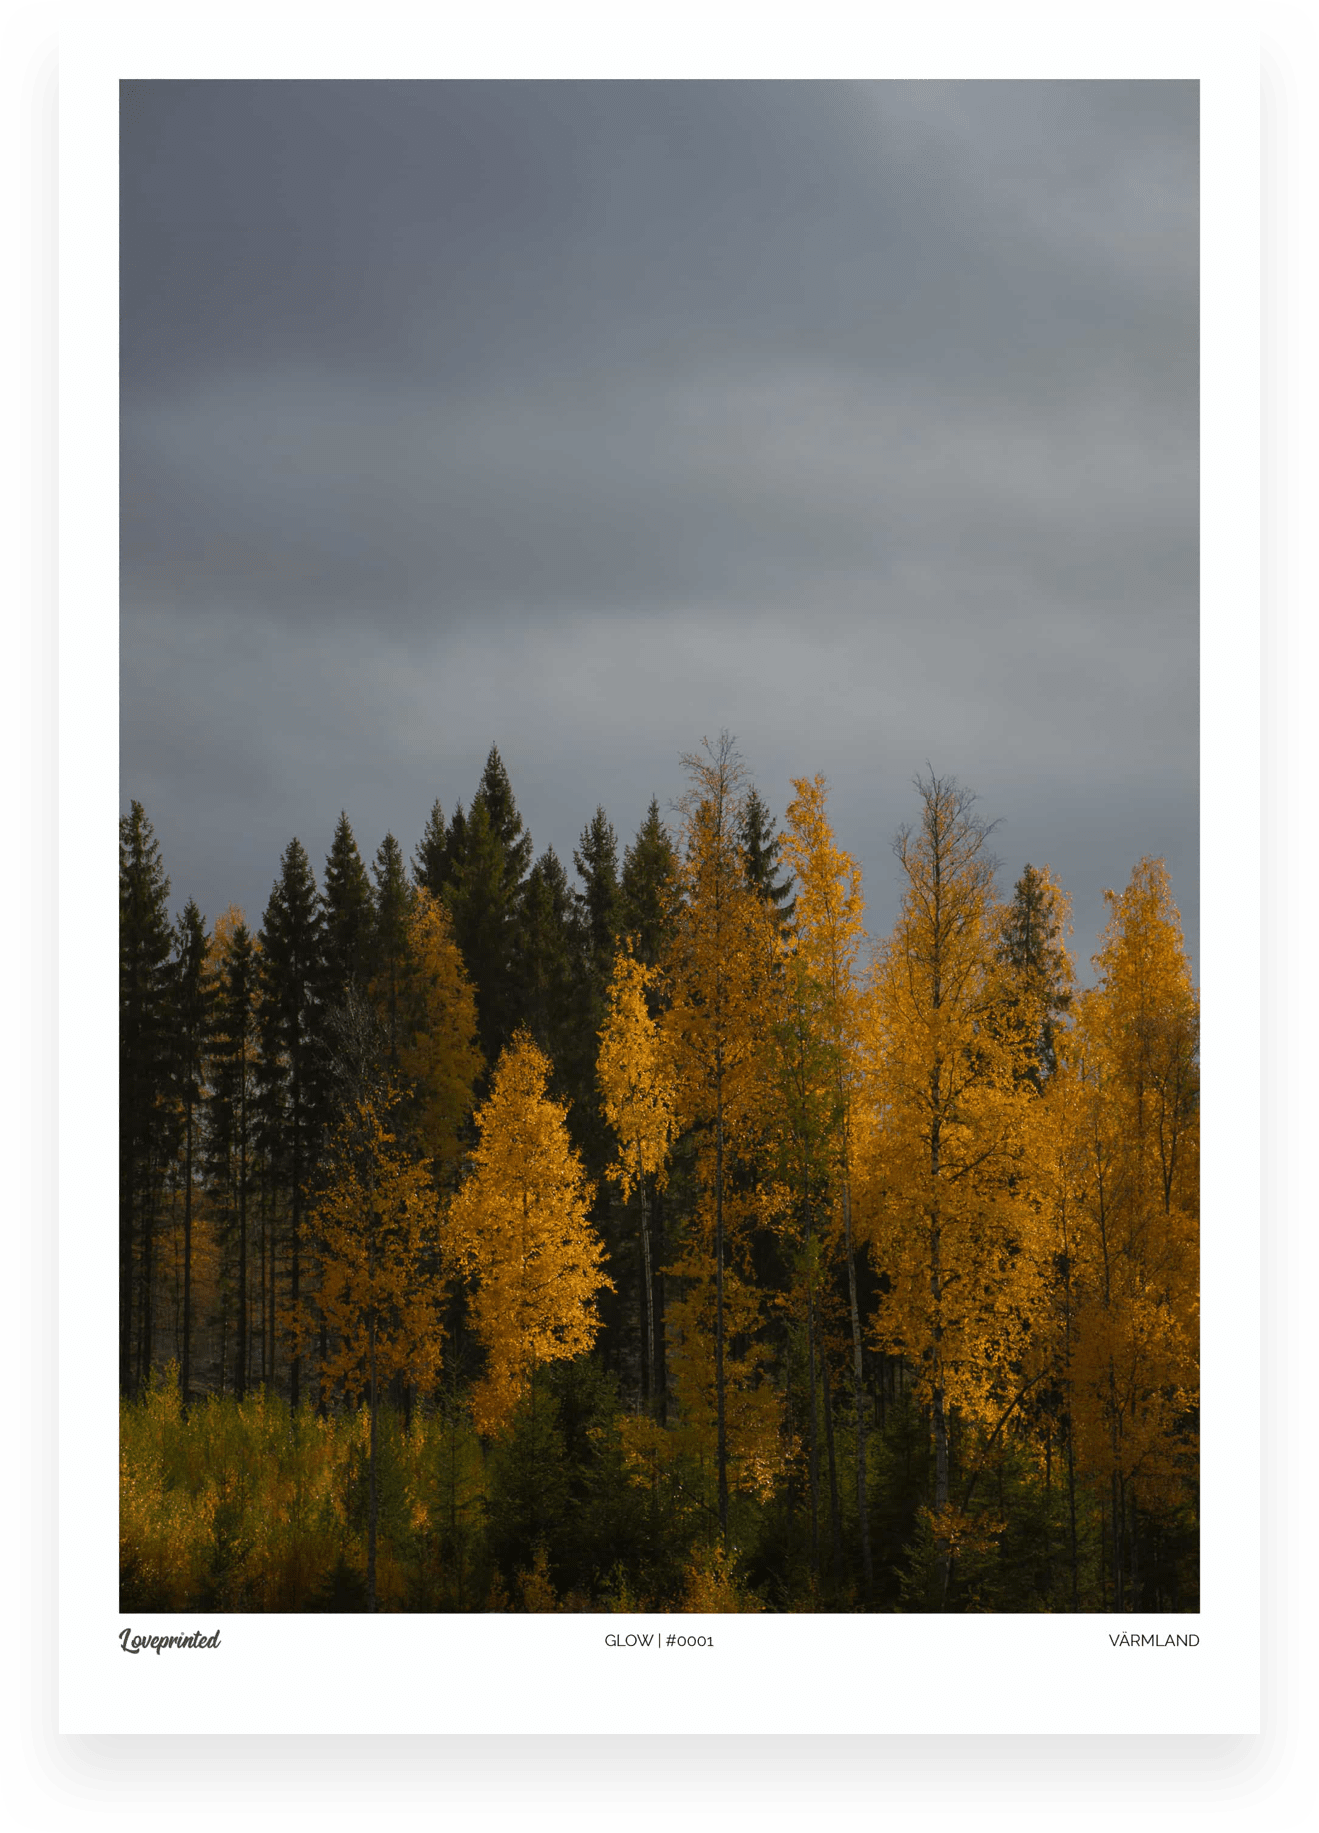 Glow | An Image of a golden Swedish tree line made by Loveprinted